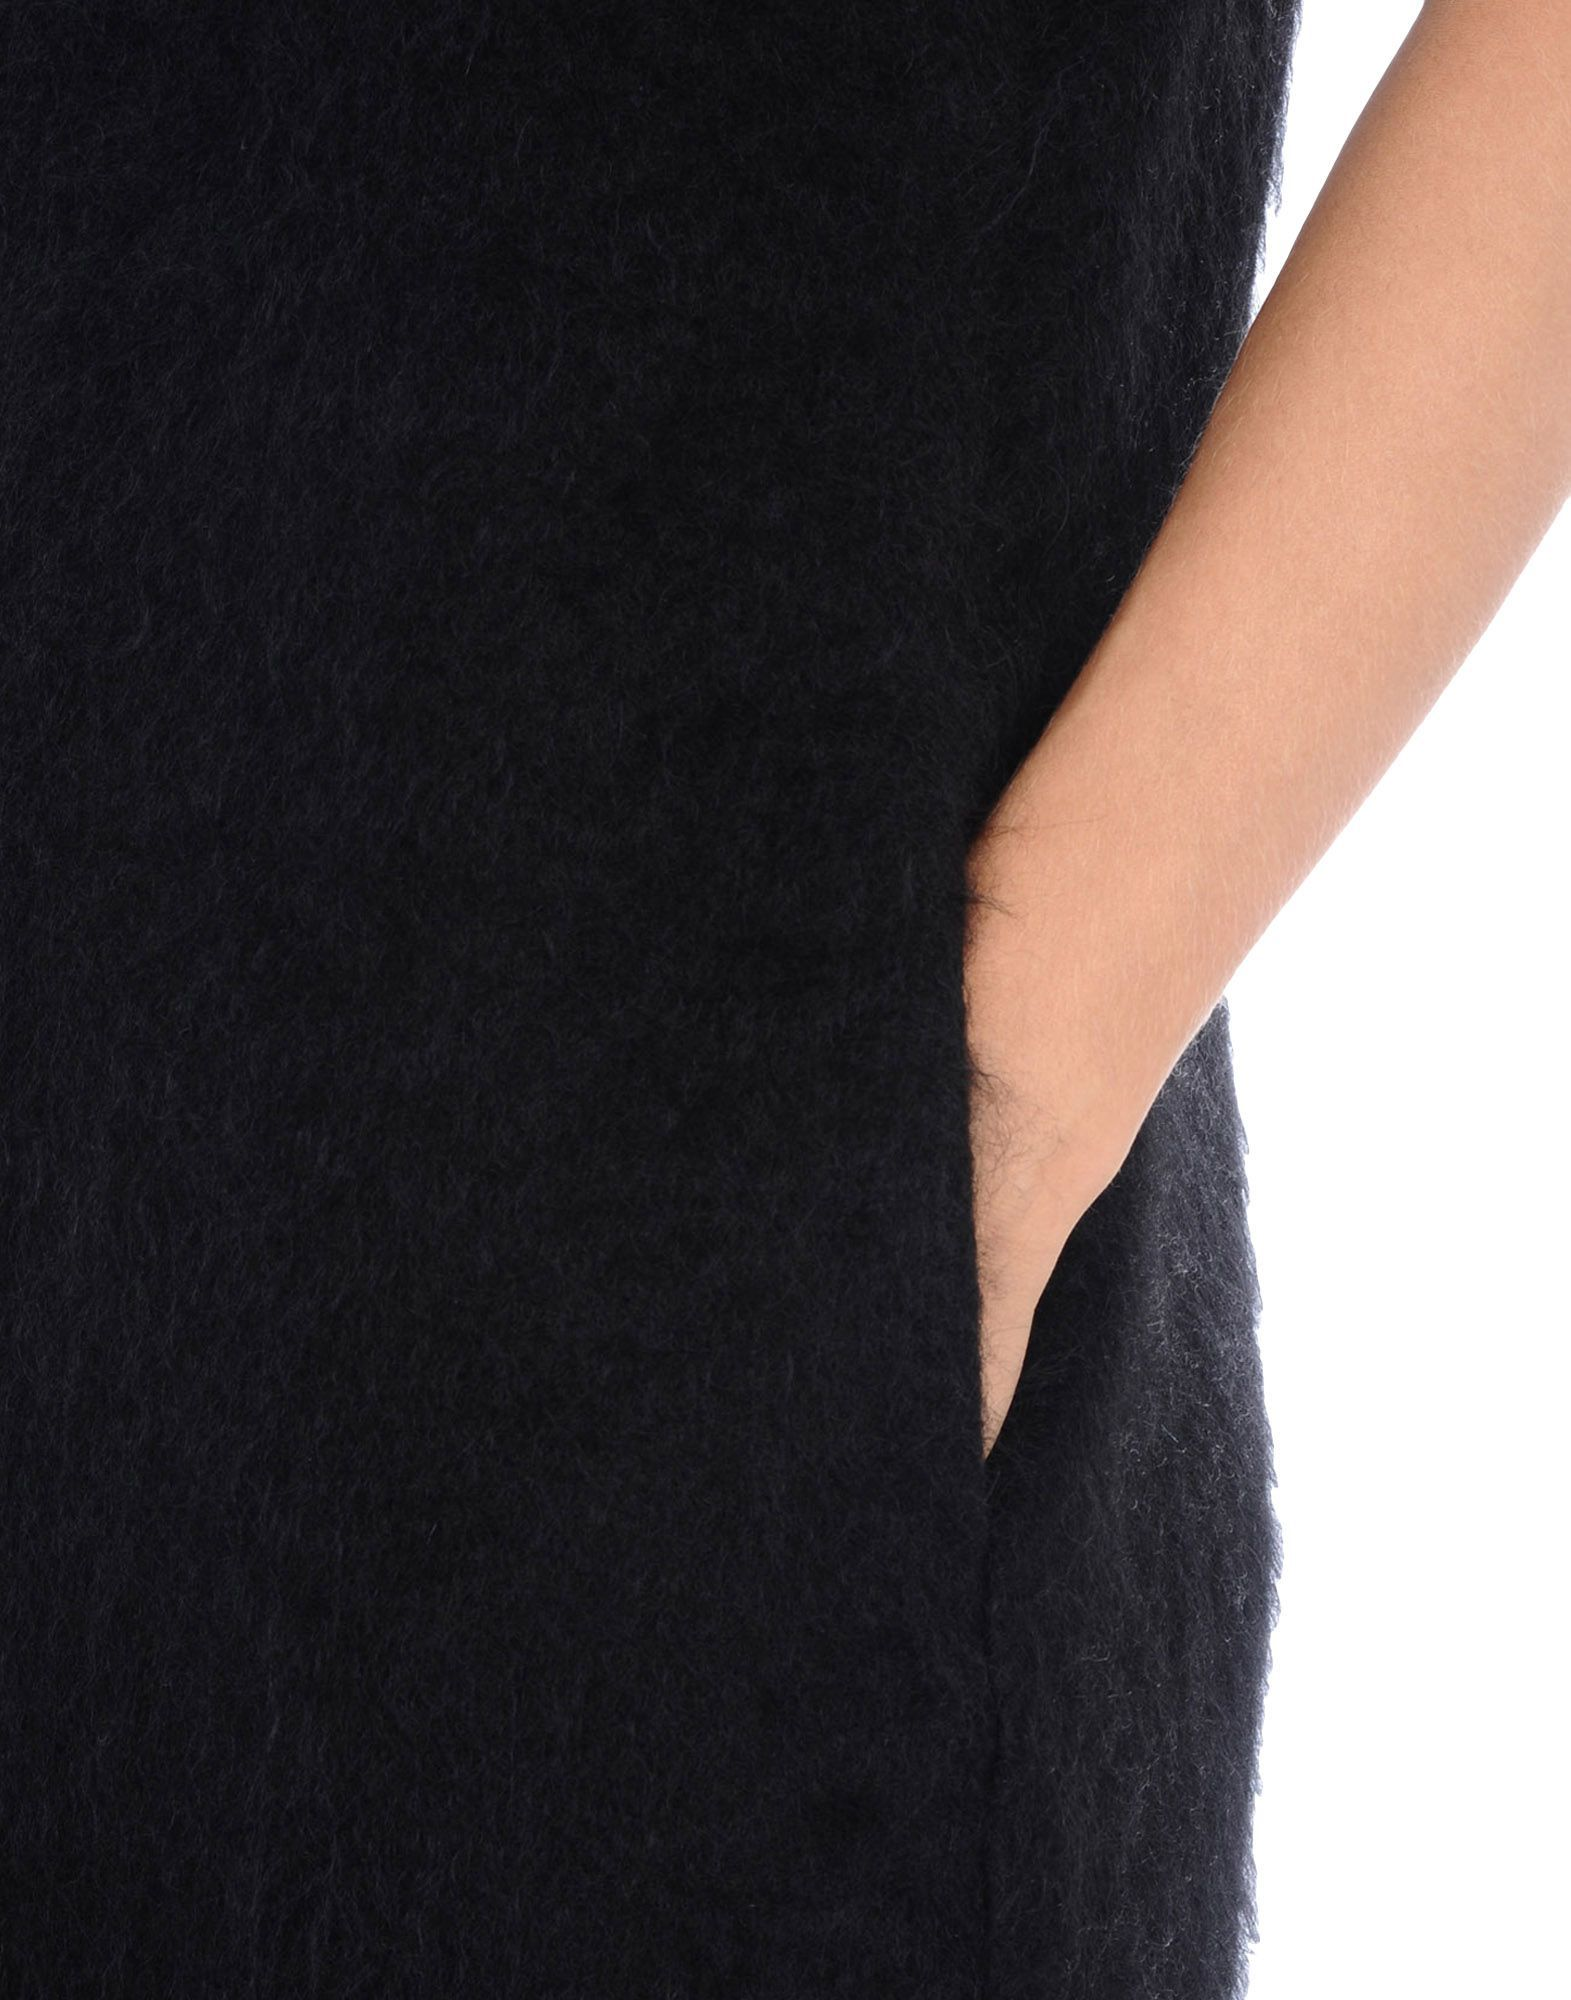 Jil Sander Black Mohair Wool Short Sleeve Dress